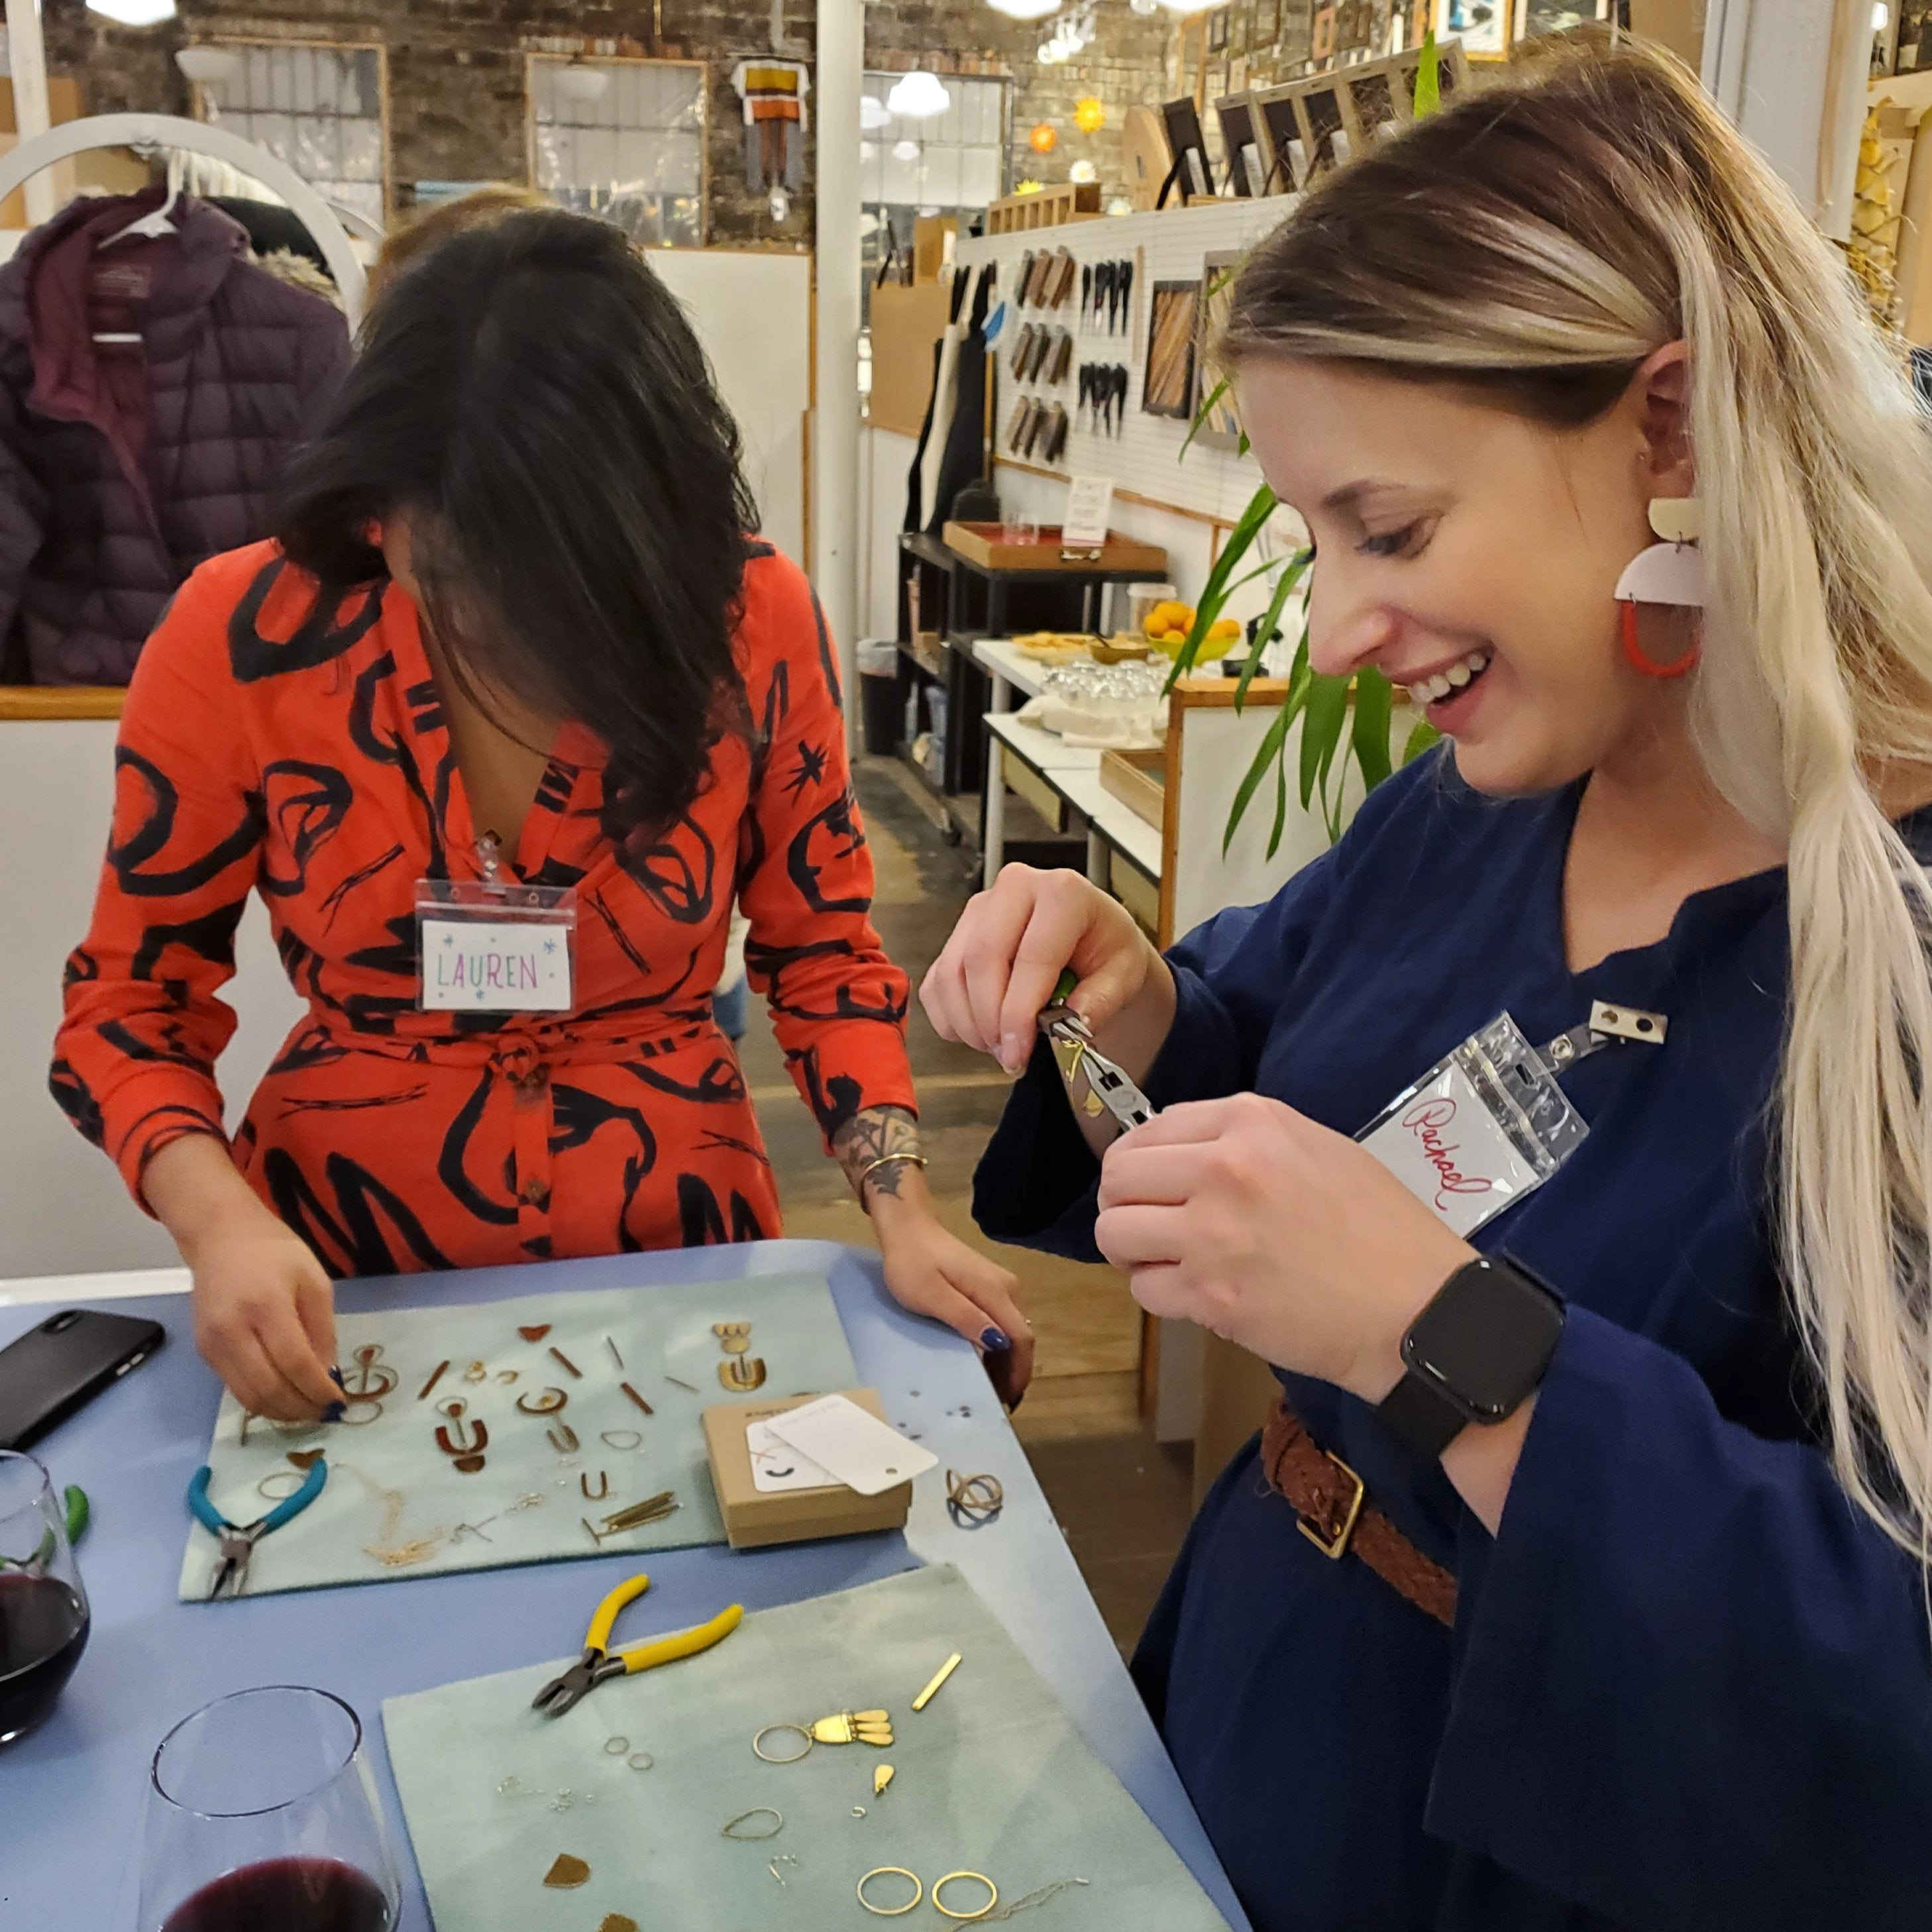 2020 - 02/13 Jewelry Workshop: Custom Beads + Assemblage on Thurs. Feb. 13 from 7pm to 9pm